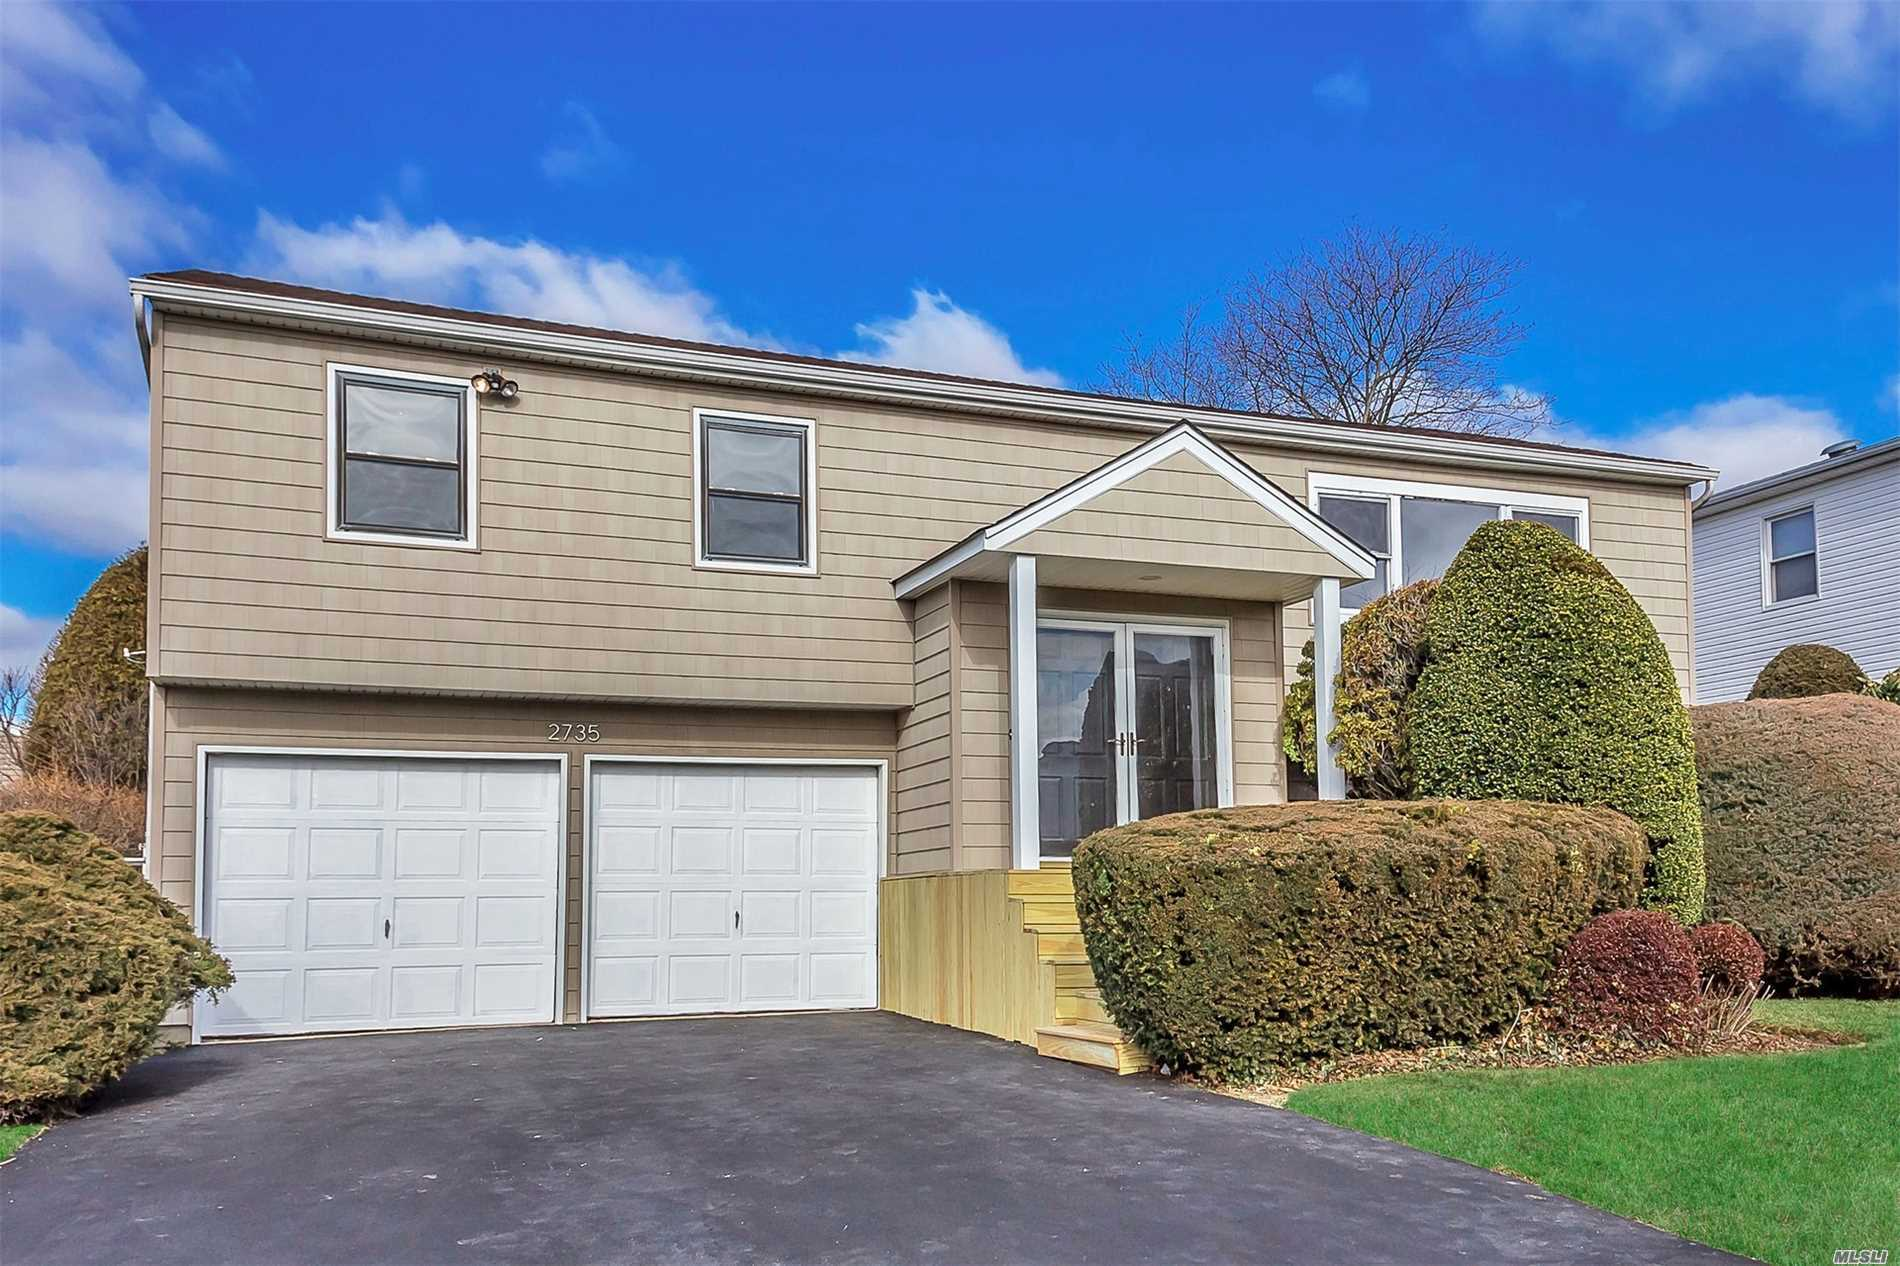 This Beautiful High Ranch Located In South Bellmore Is Ready For You! 2216 Square Feet, 4 Beds, 3 Baths, Great Layout And Tons Of Storage, Has Master En-Suite. Freshly Painted, Newly Refinished Hardwood Floors. Newer Roof, Siding Roof And Windows.